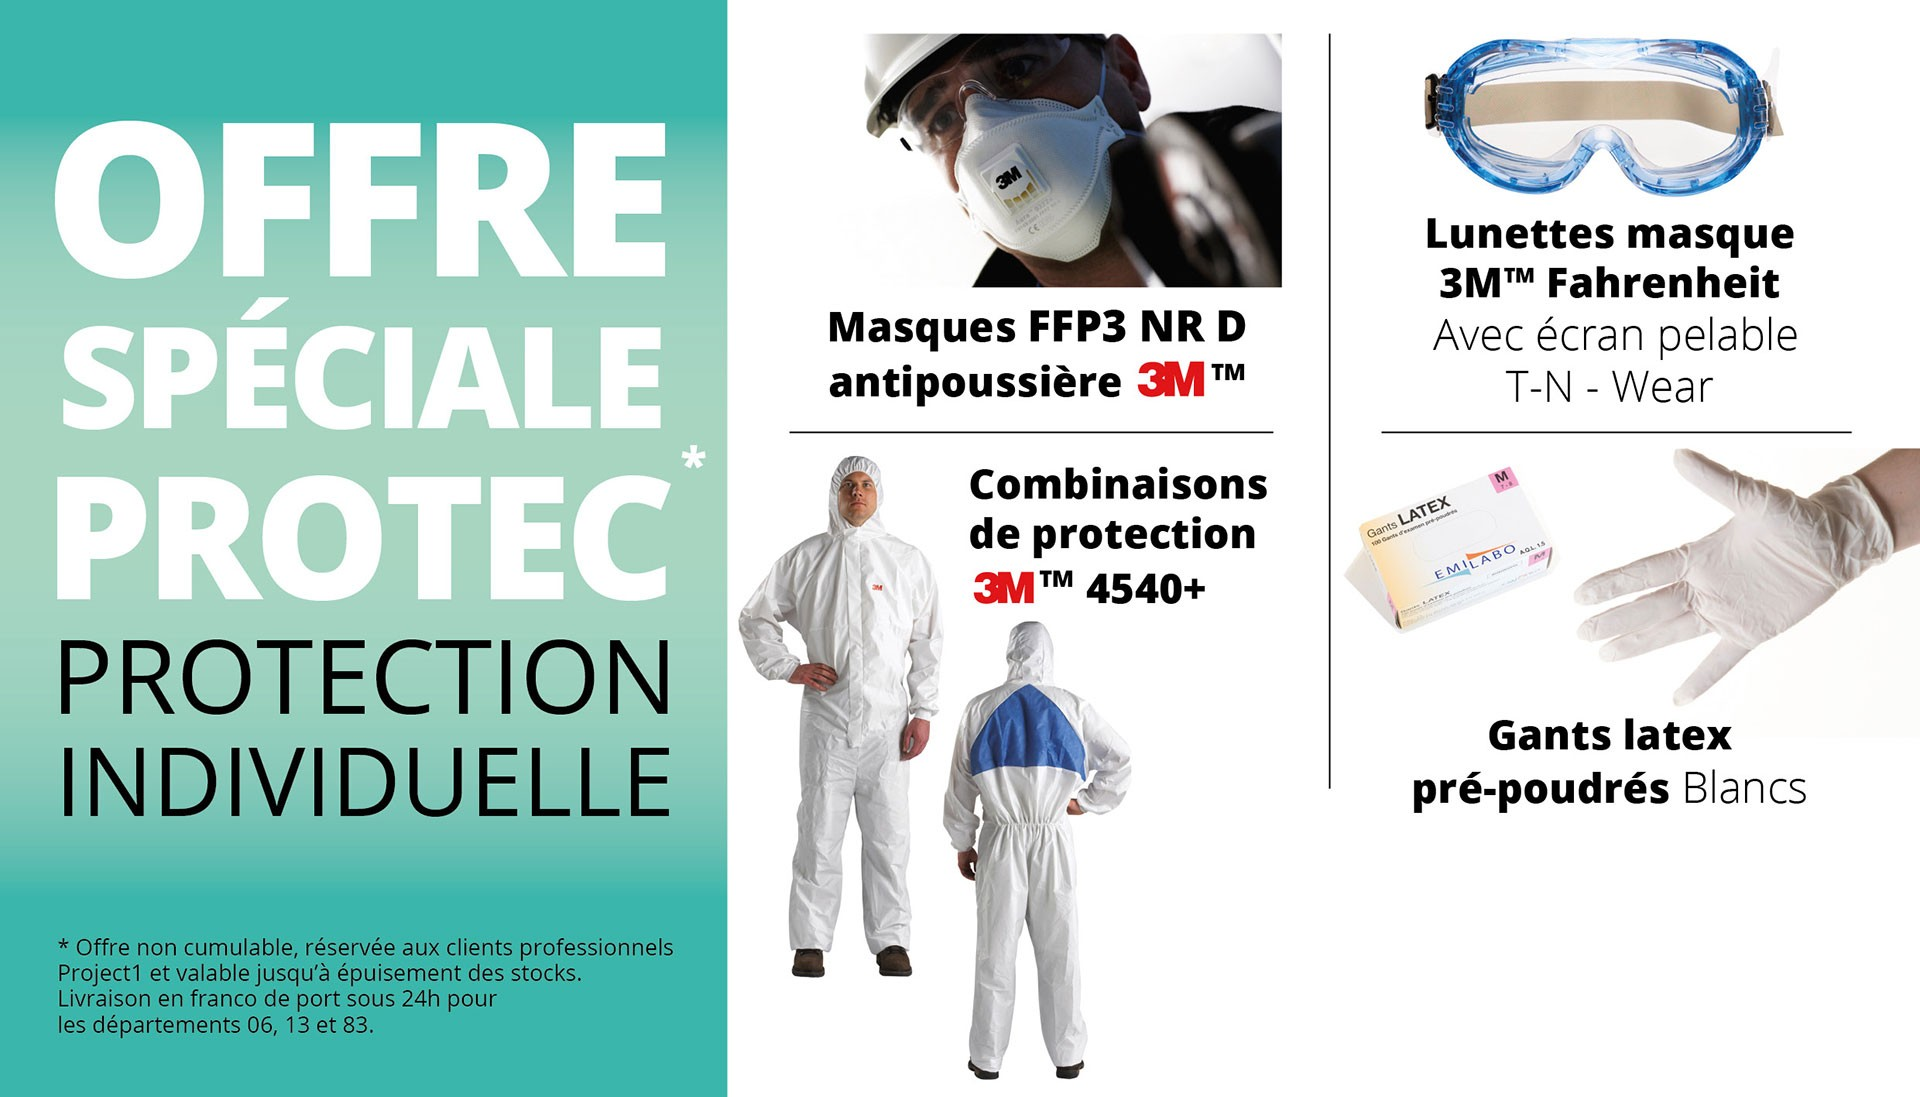 Offre spéciale protection individuelle